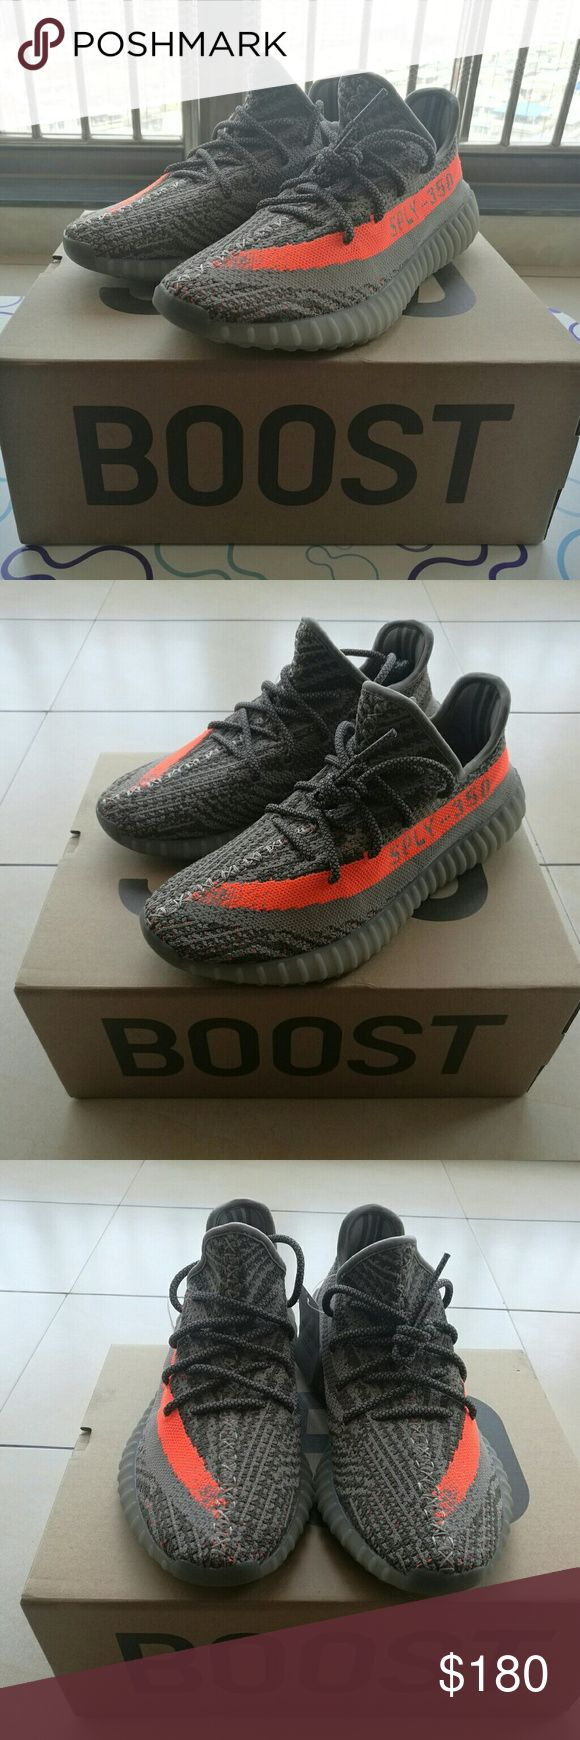 Adidas Yeezy 350 V2 Beluga With REAL BOOST Size US 4-13(euro36-47) available.Yeezy Shoes are best version ua shoes with real boost and original box,all the shoes will come with original box and tissue papers. They are made with the same materials and work